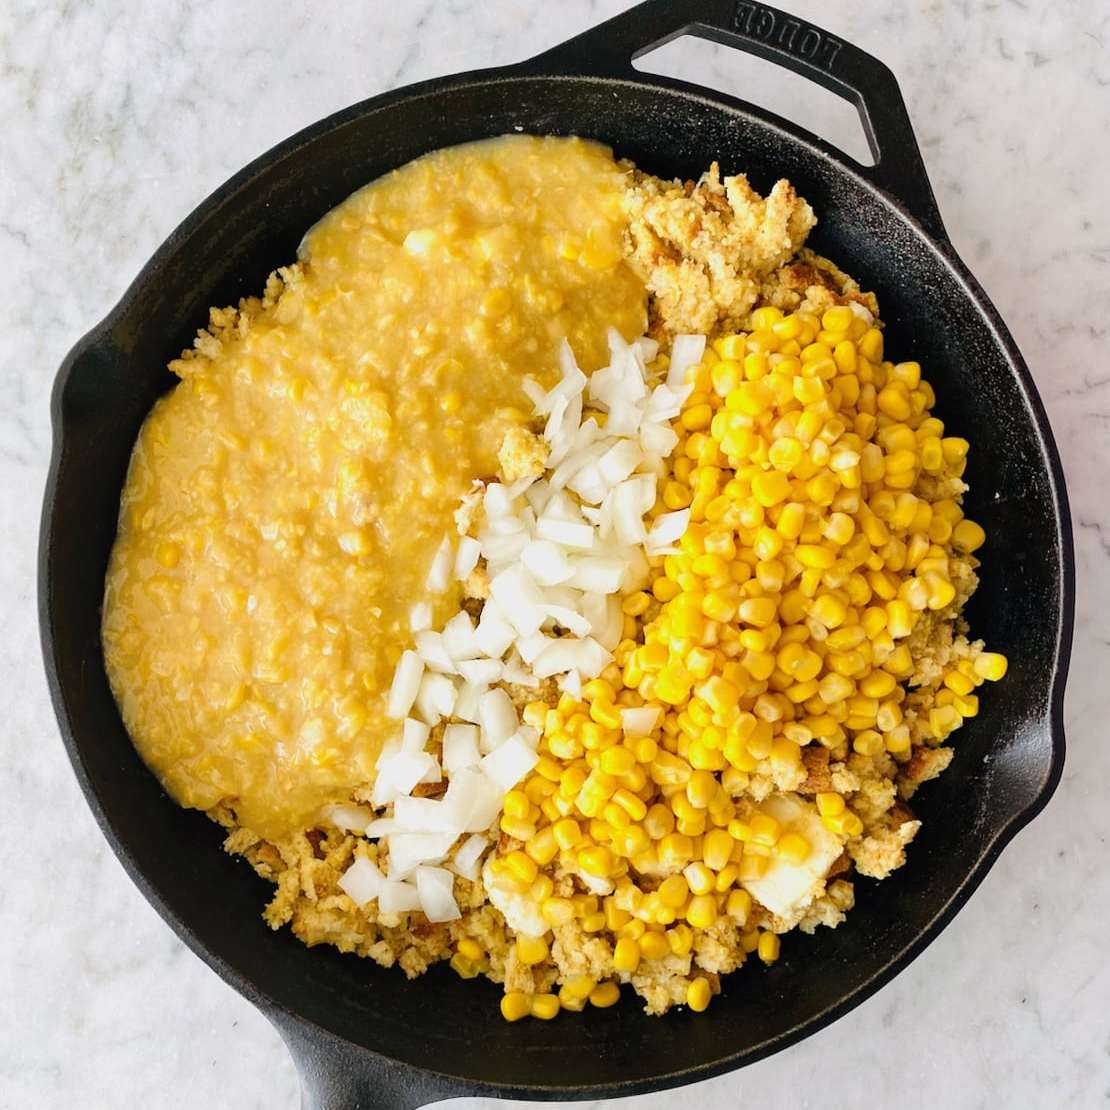 cream corn, onion and whole corn added to stuffing mix.